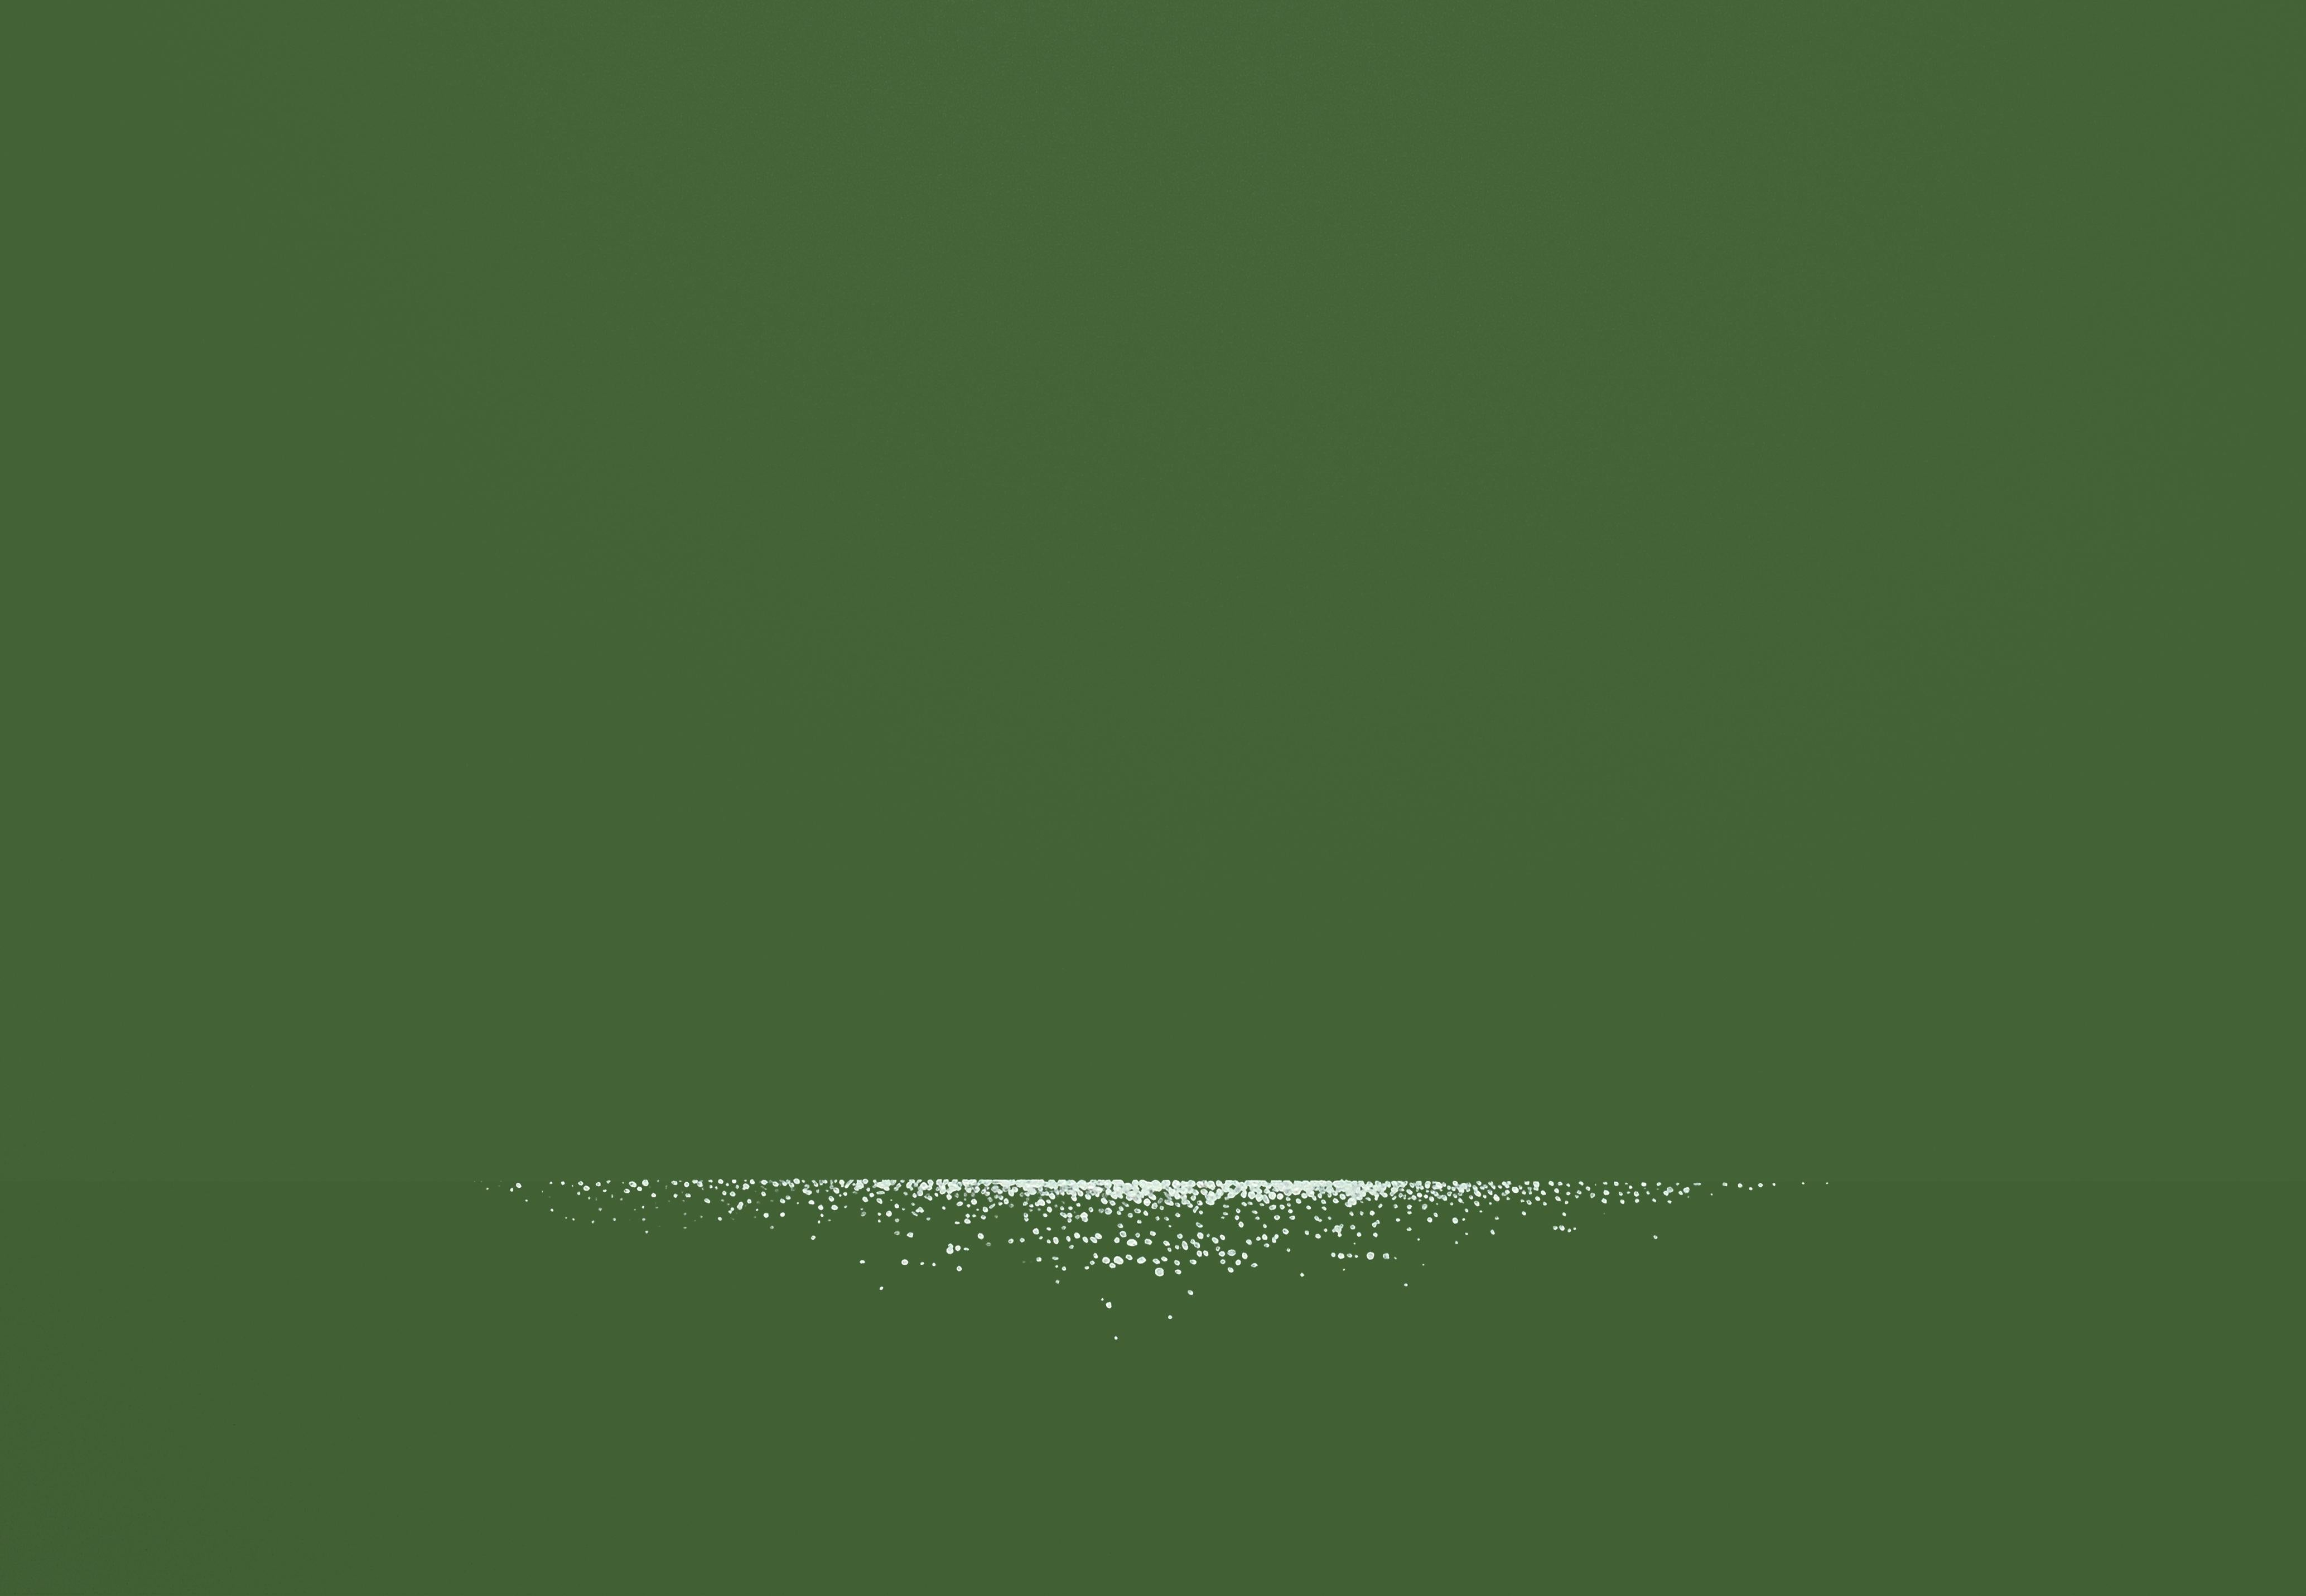 Light 18 August 18:26, Modern Landscape Painting, Minimalistic, Abstract, Sea